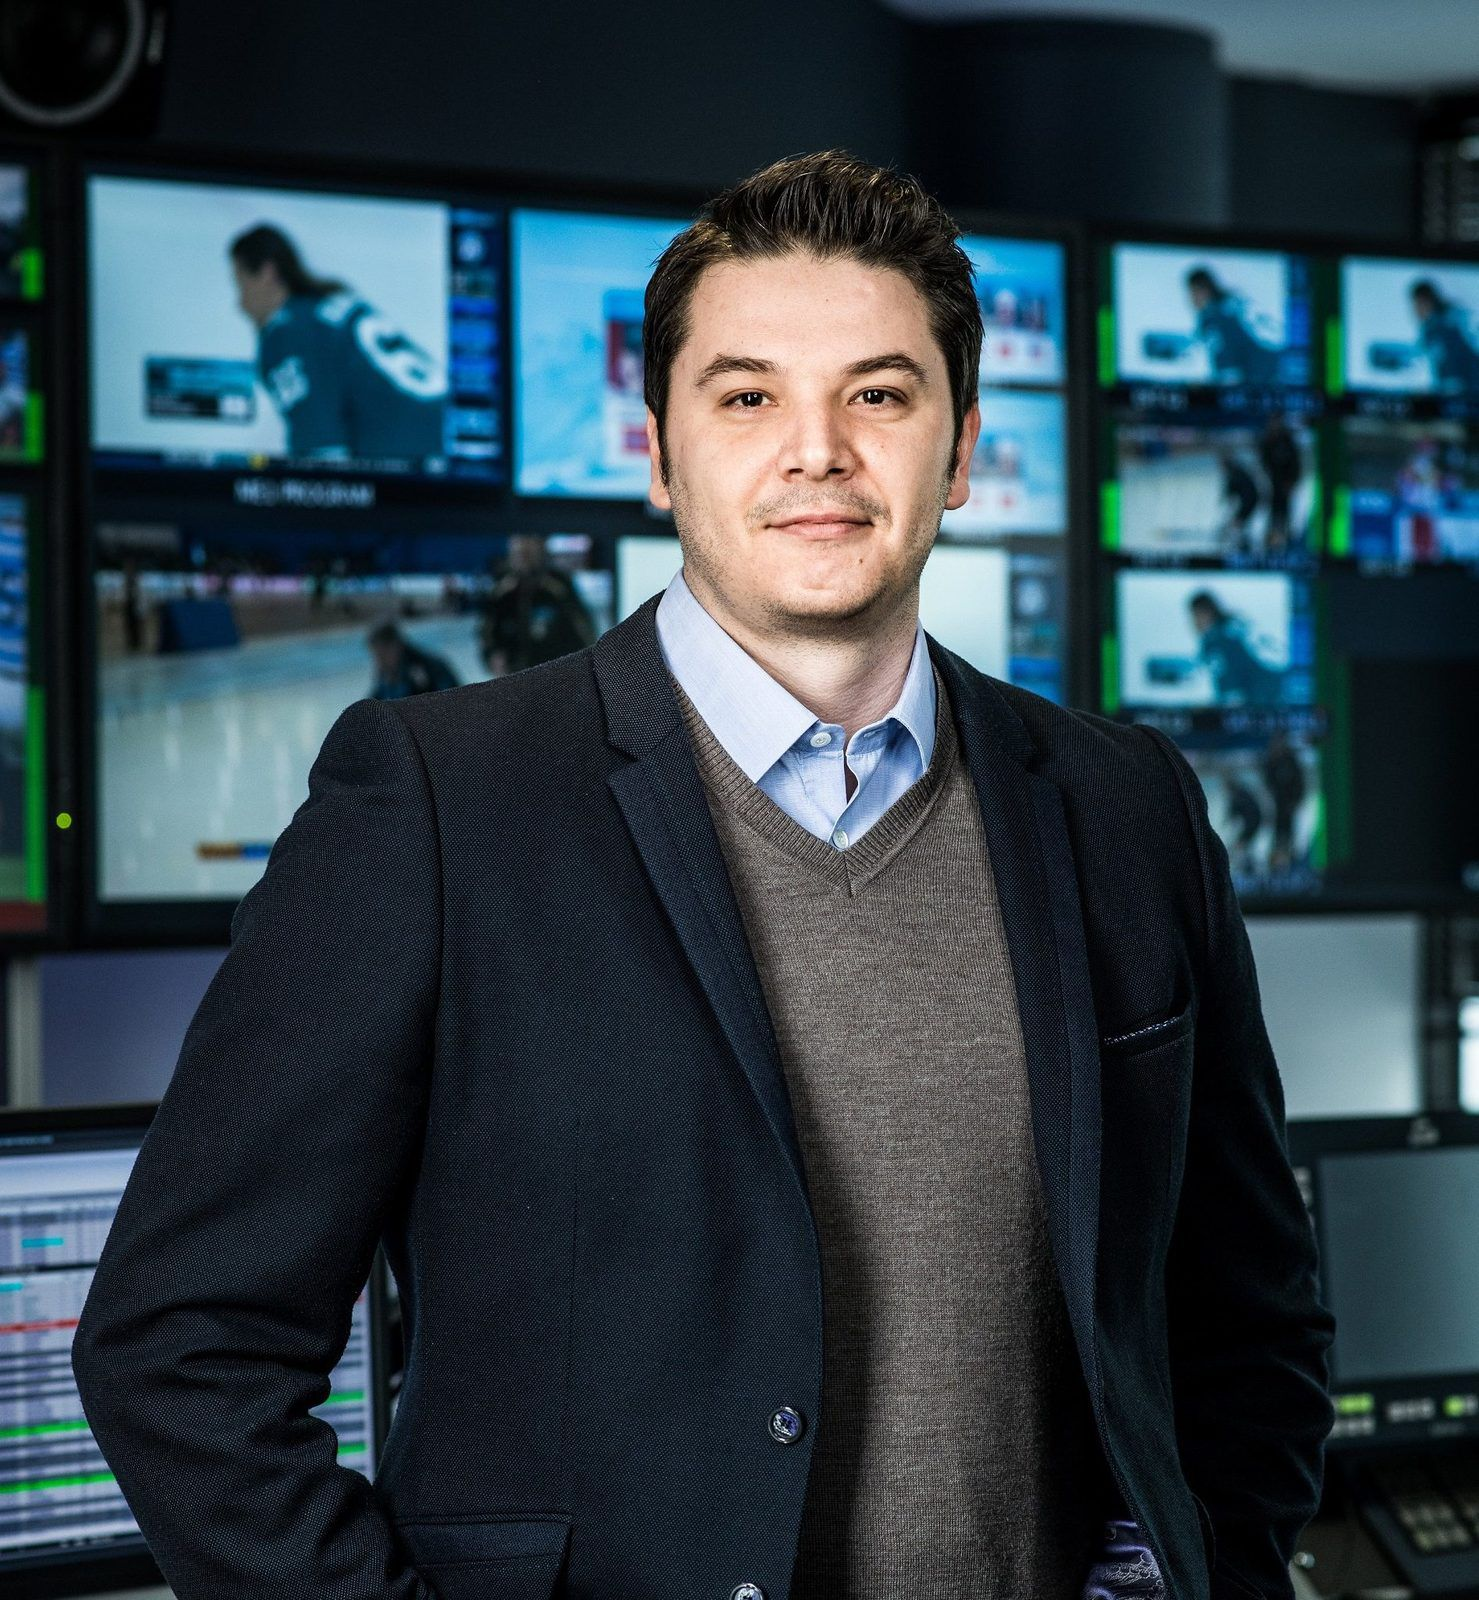 George Aivazoglou, nommé Head of Engagement and Direct-to-Consumer pour la zone EMEA